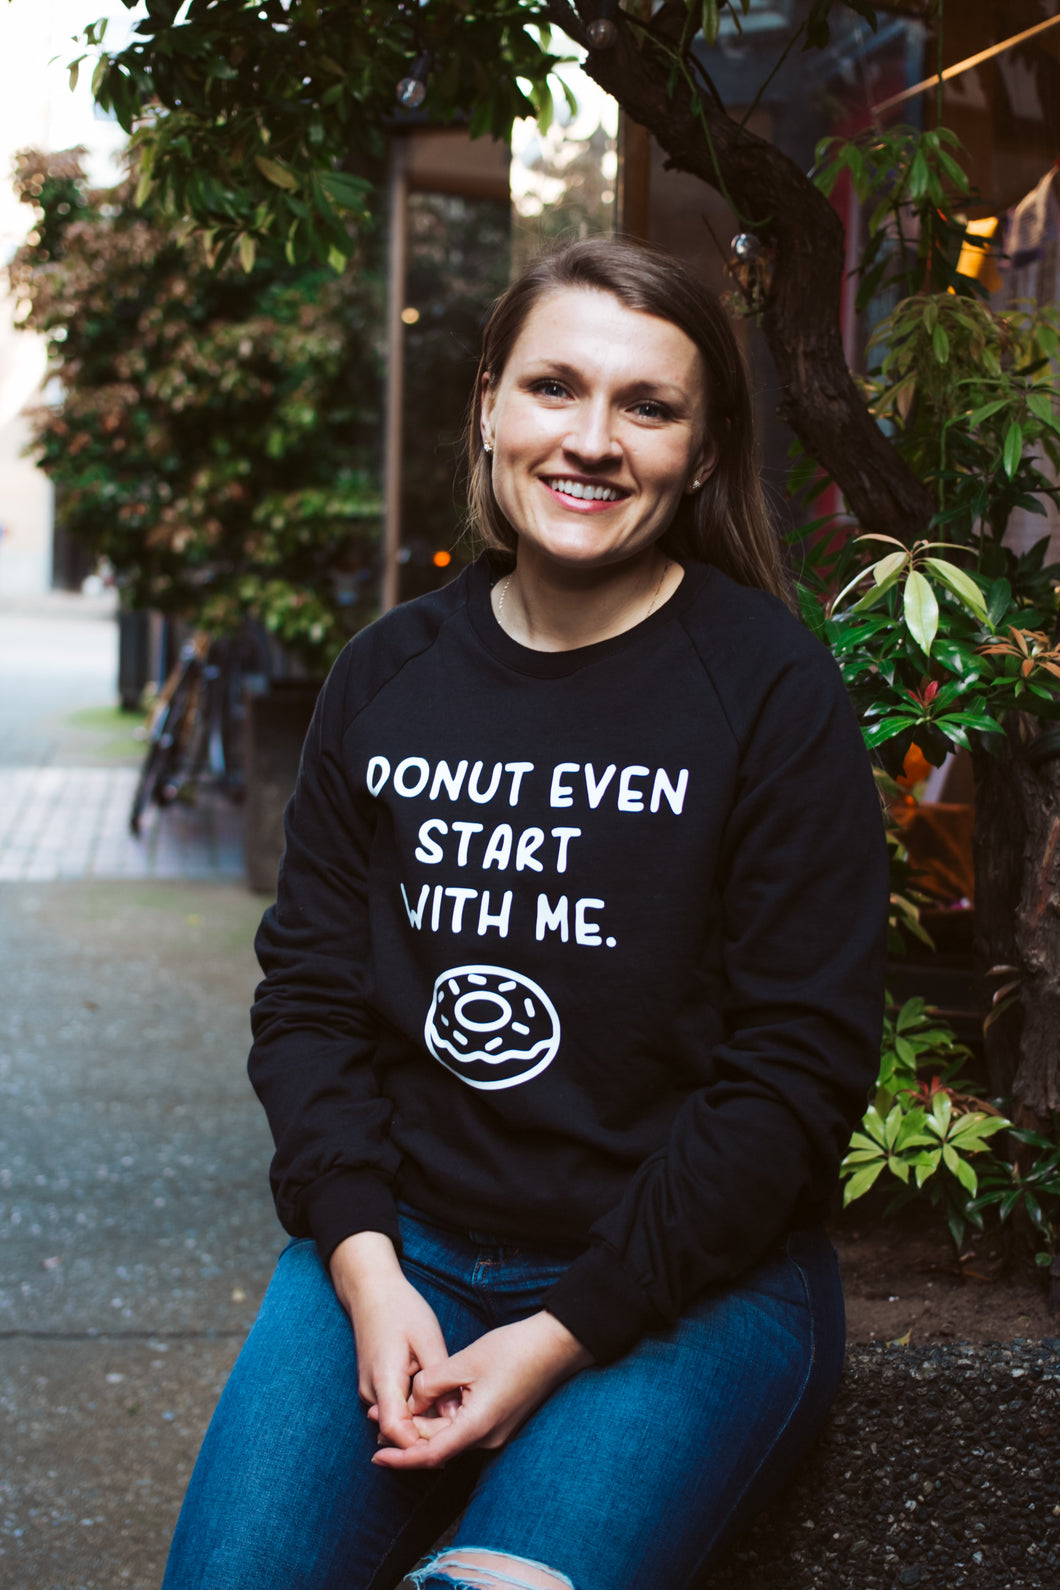 Donut Even Start With Me.